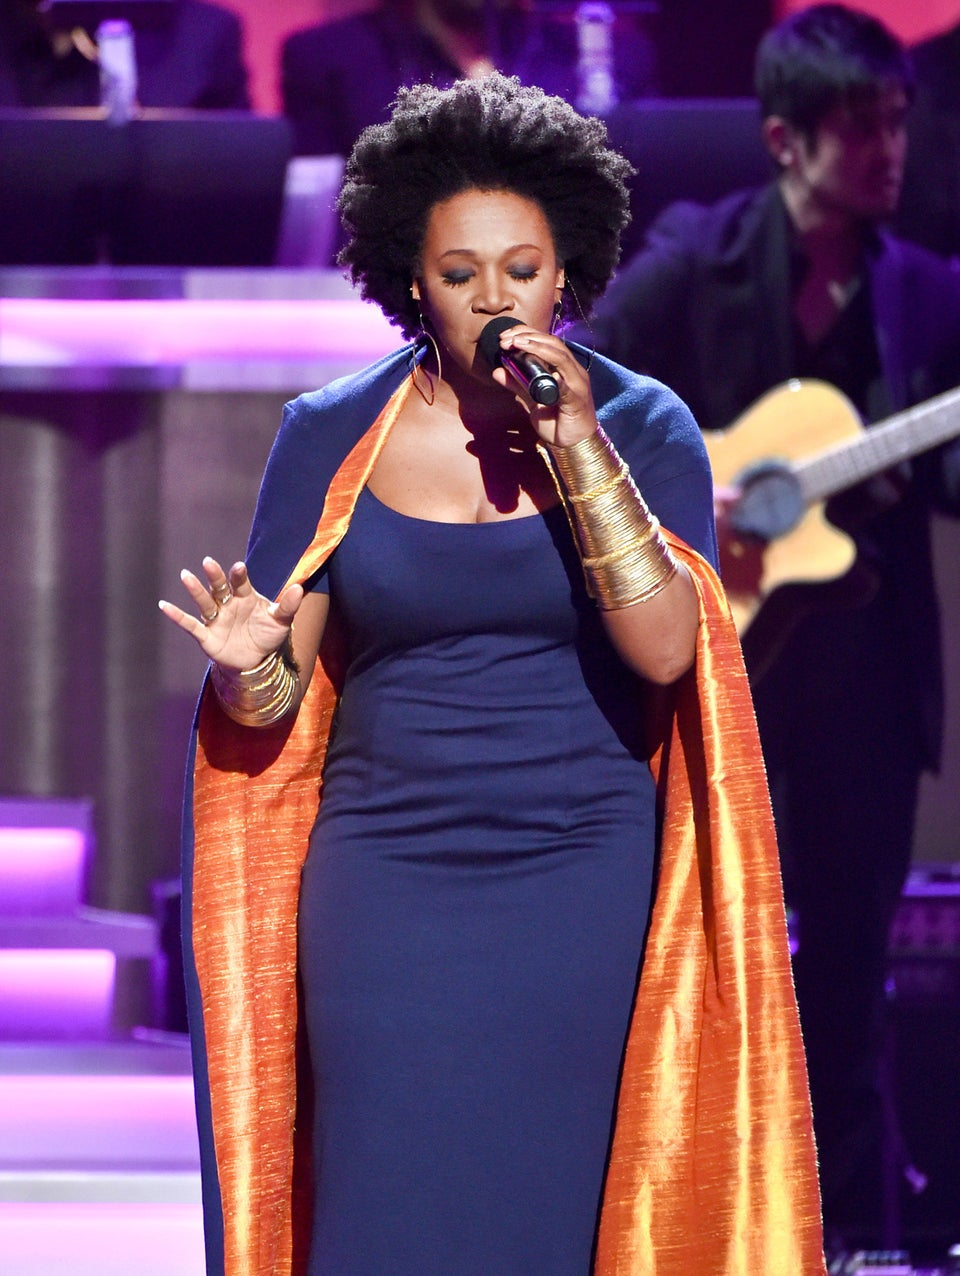 India.Arie Delivers Stellar Performance in Harlem